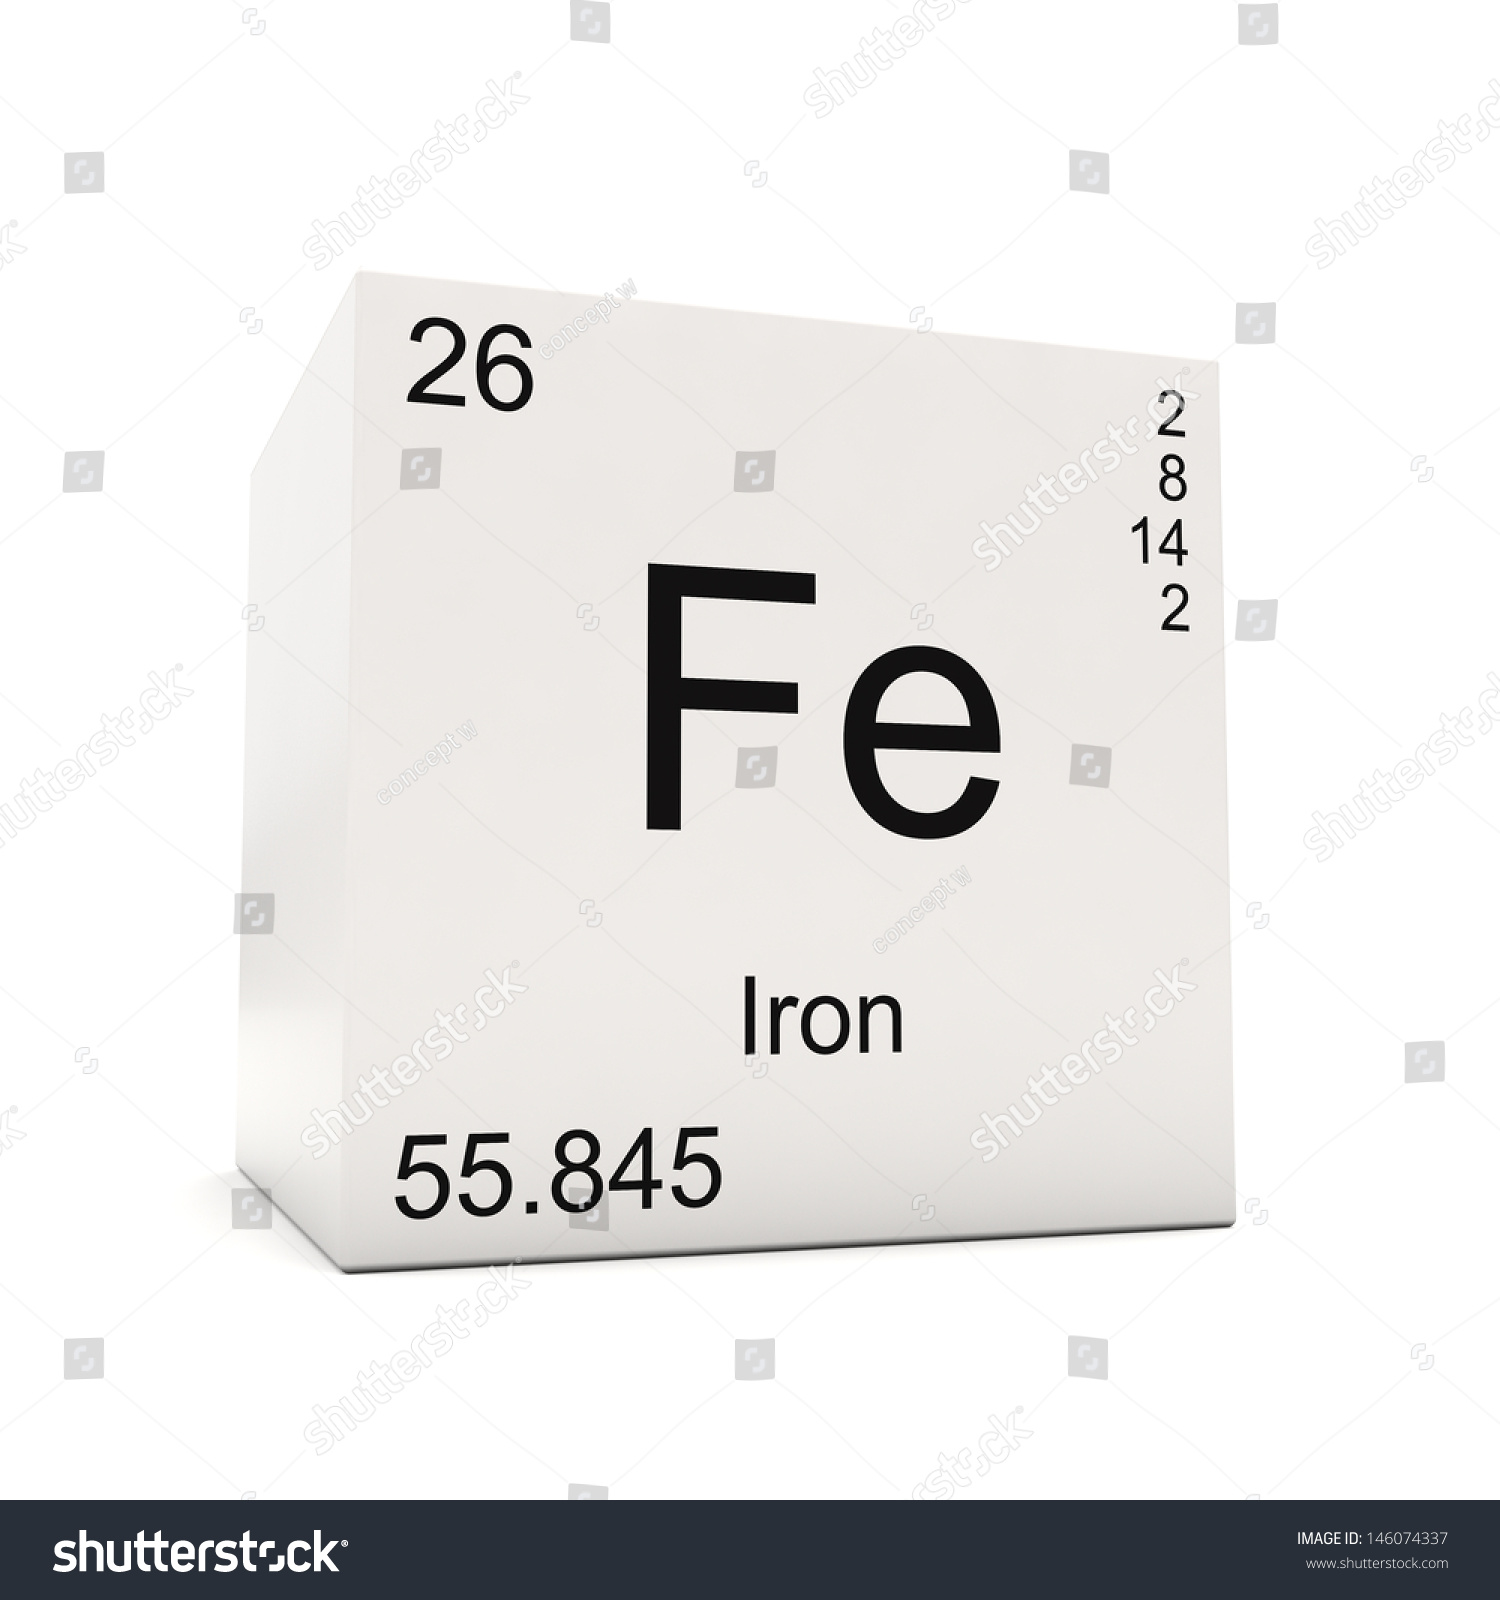 Cube iron element periodic table isolated stock illustration cube of iron element of the periodic table isolated on white background gamestrikefo Choice Image